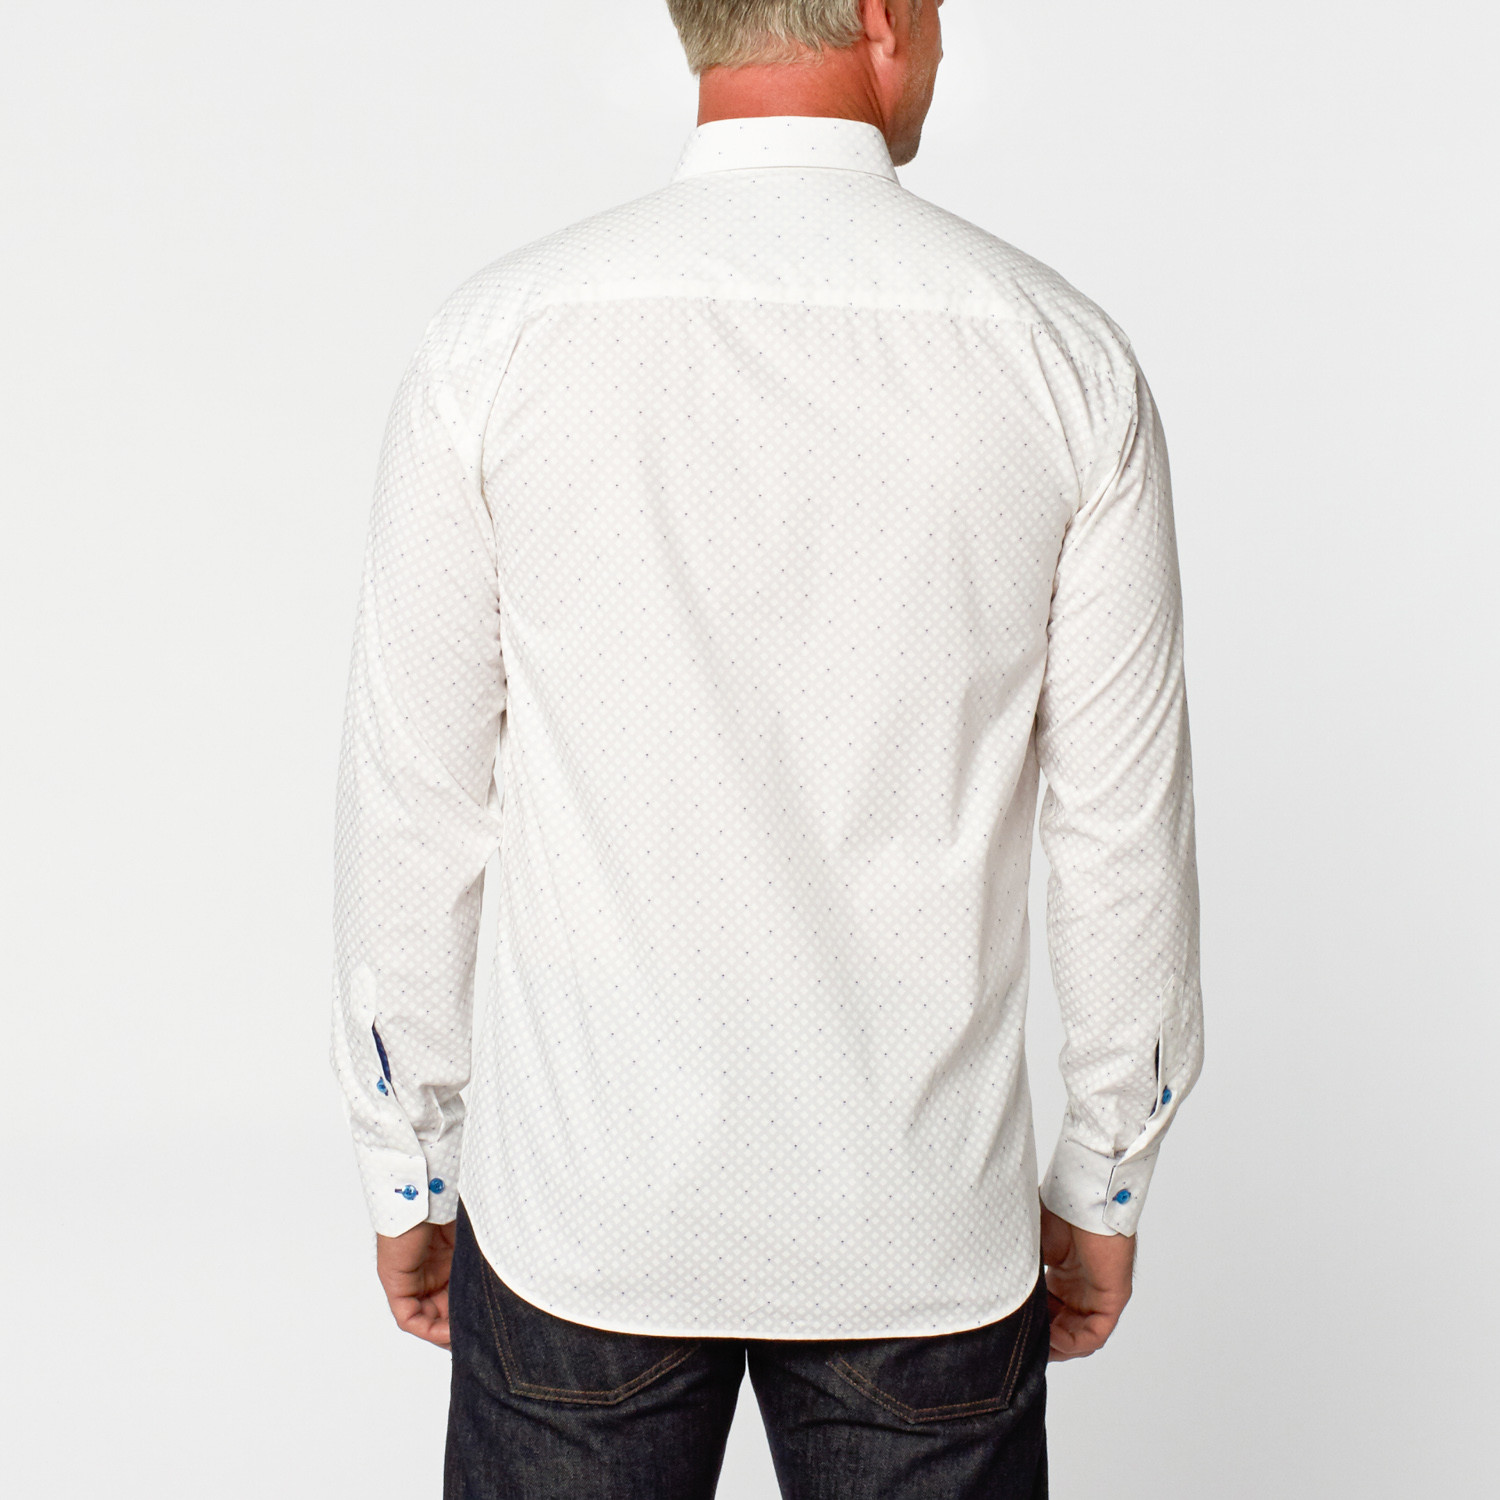 Long Sleeve Button Up Shirt White S Maceoo Touch